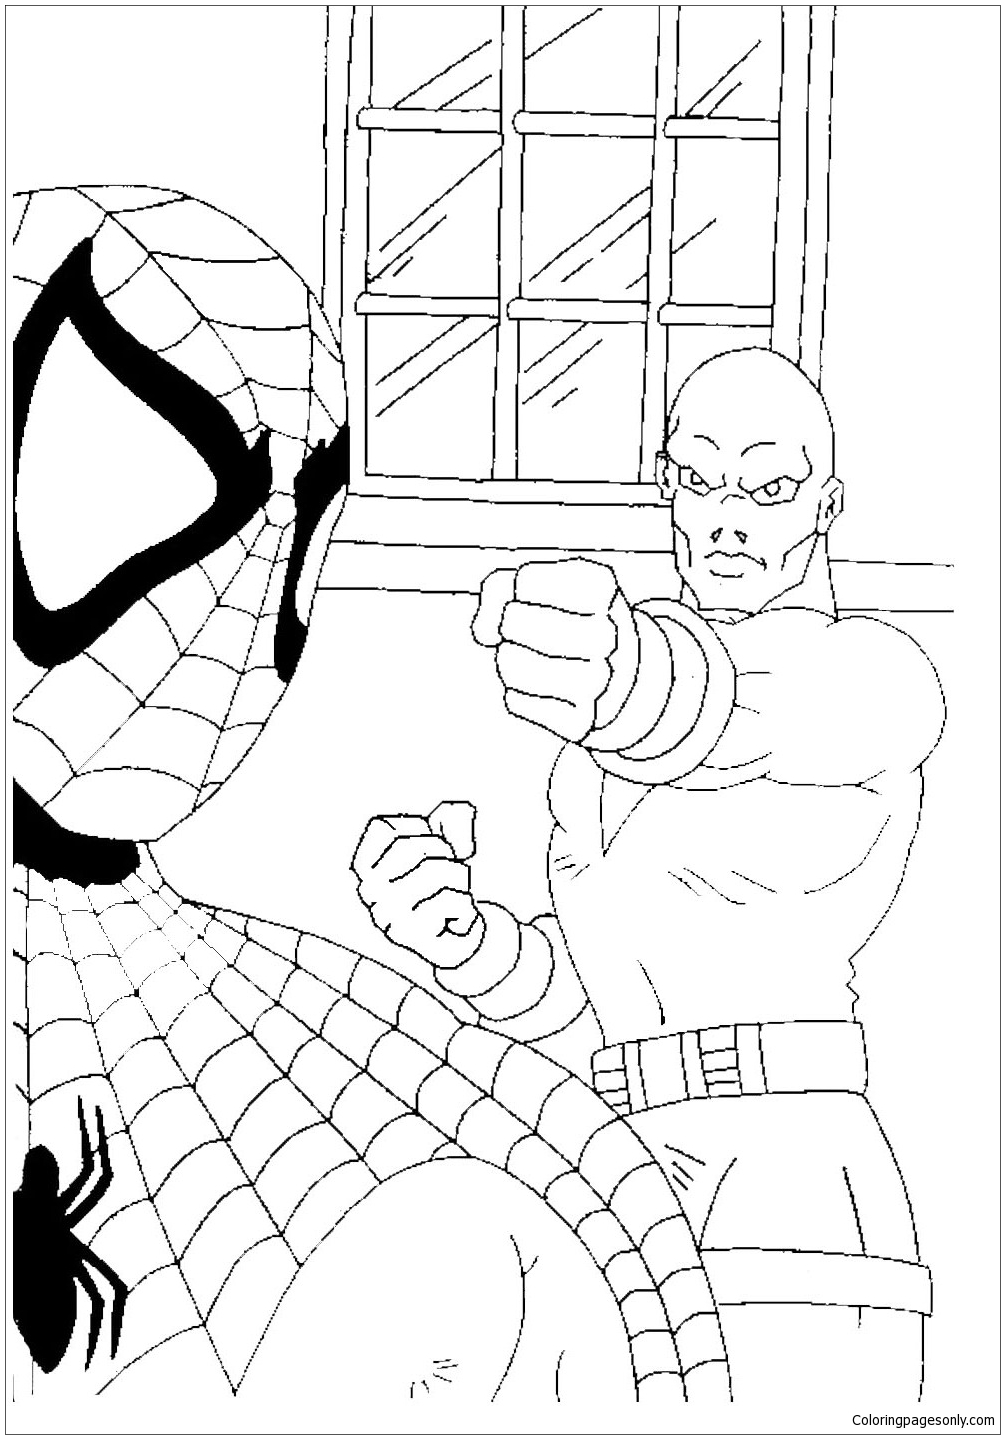 coloring sheet spiderman coloring pages printable cute spiderman coloring page for kids pages sheet spiderman coloring coloring